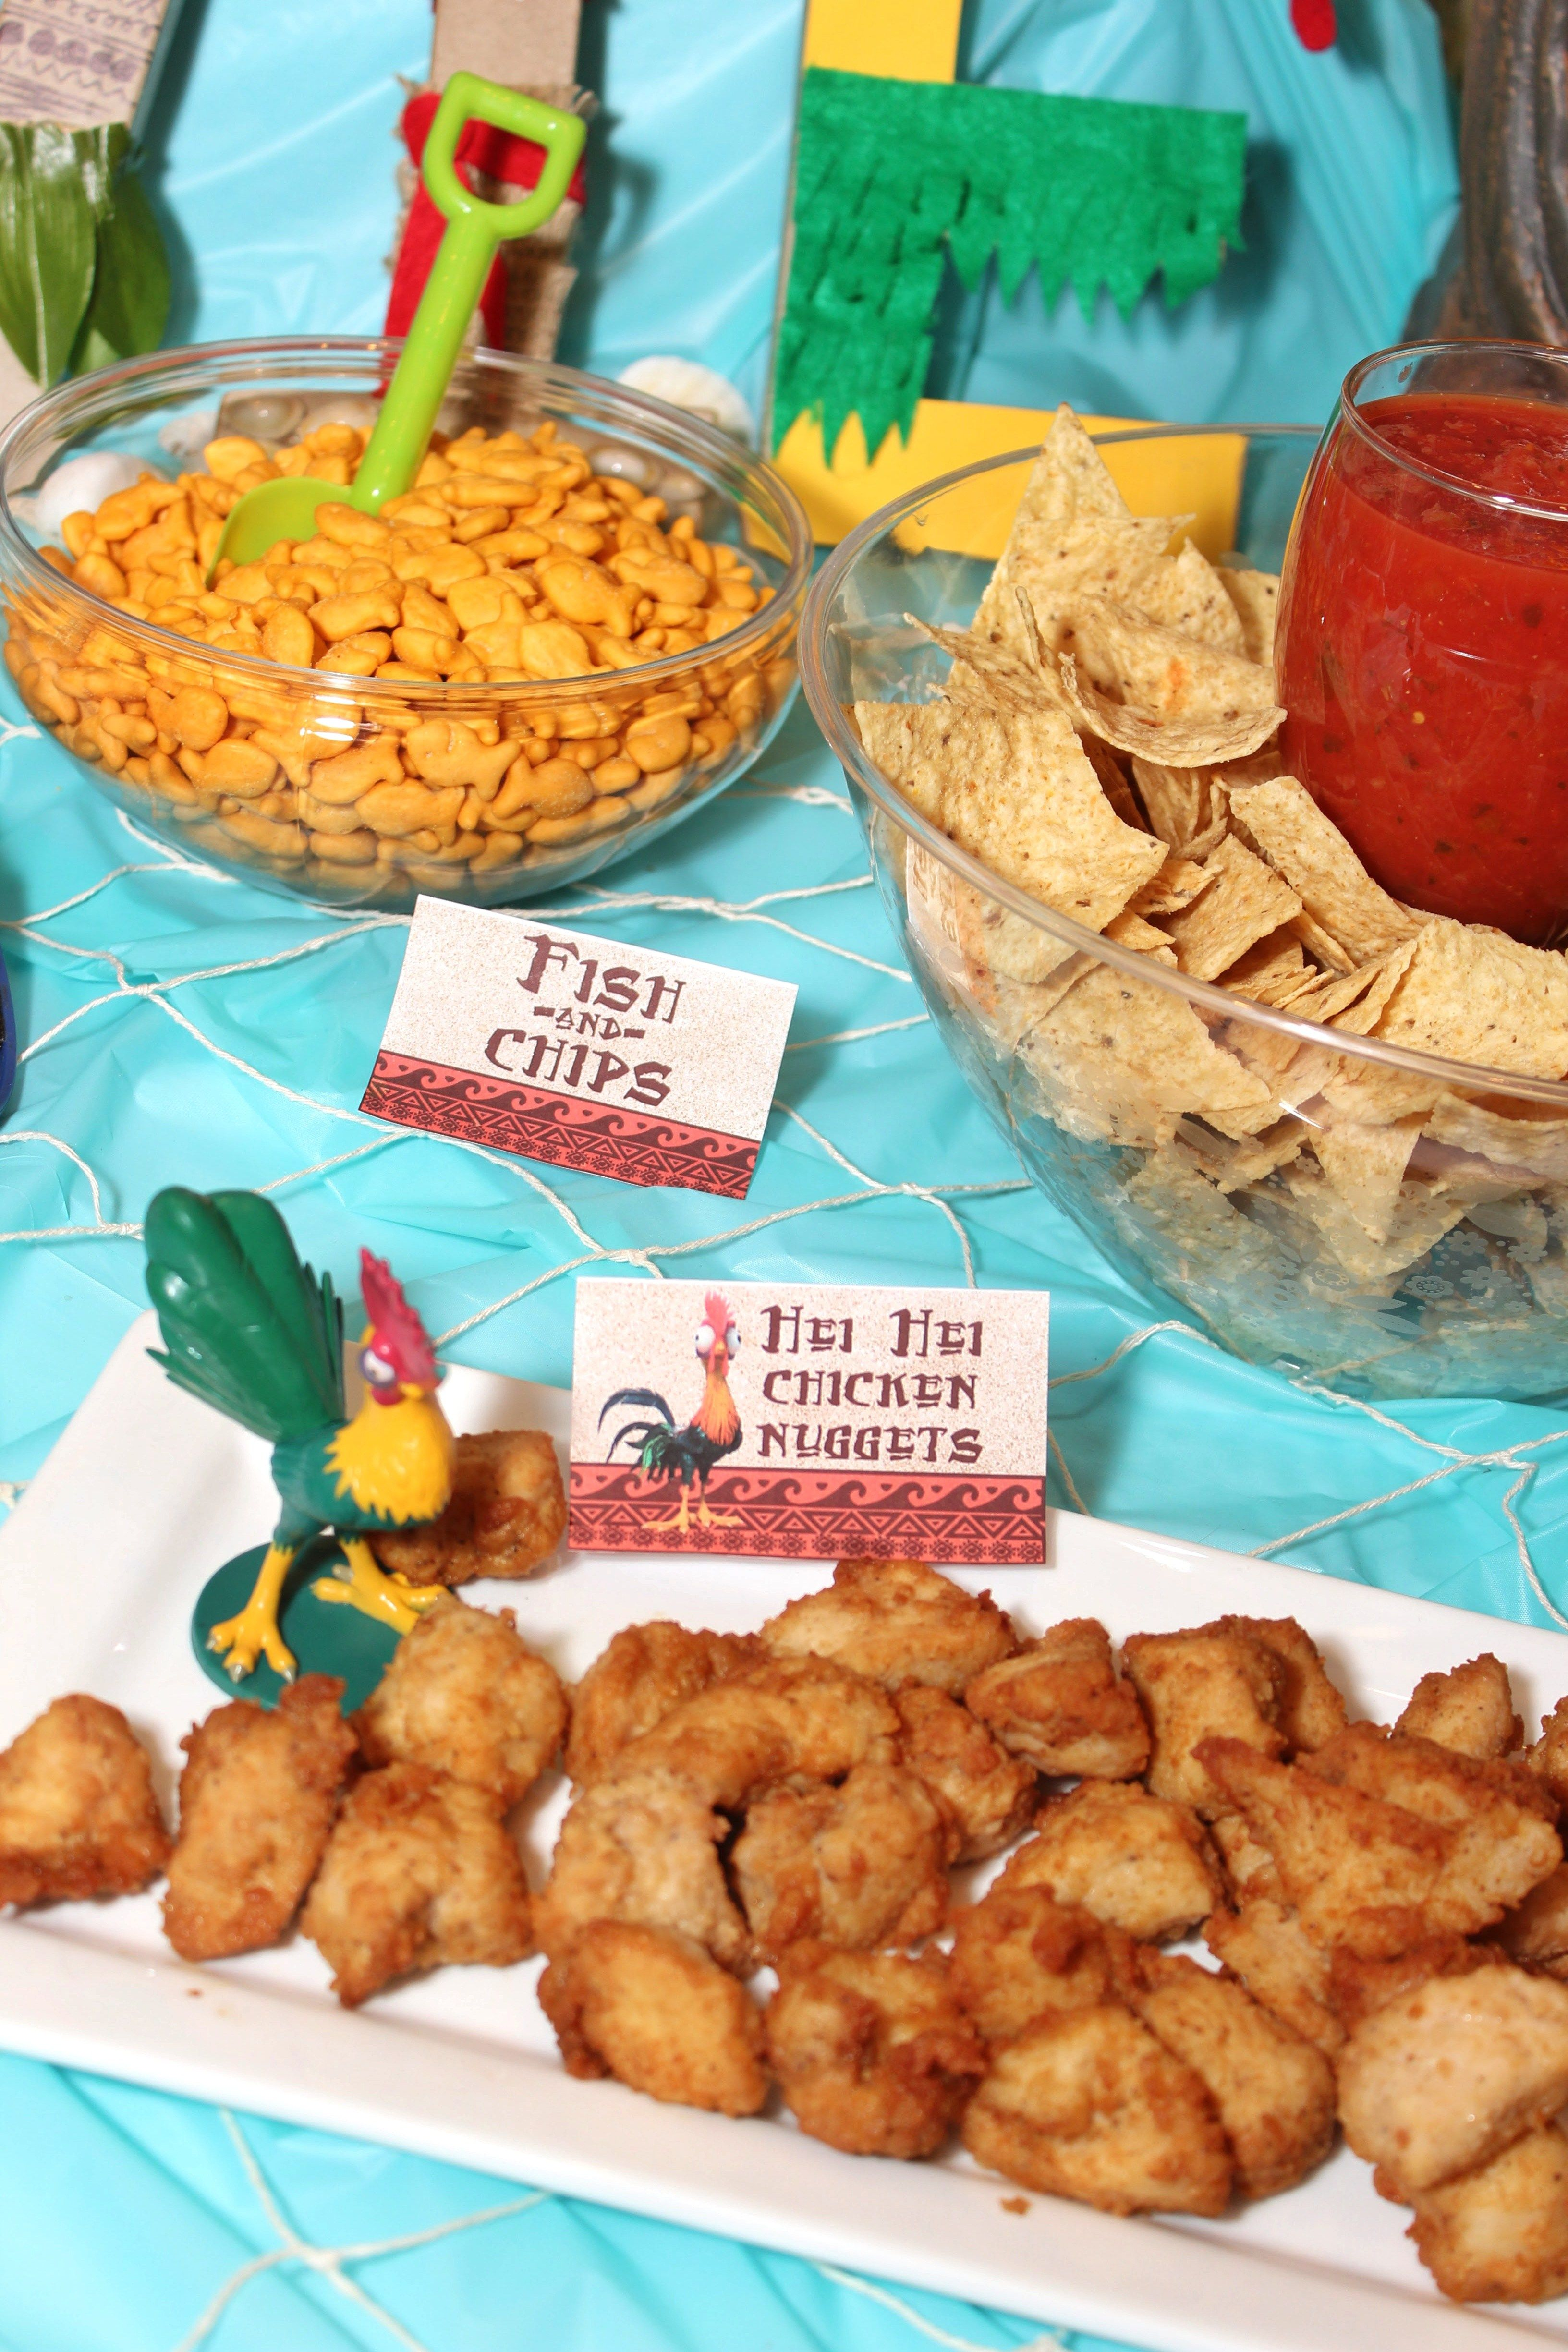 Moana Birthday Party Ideas With FREE Printables Food Menu Cupcake Pictures Activities